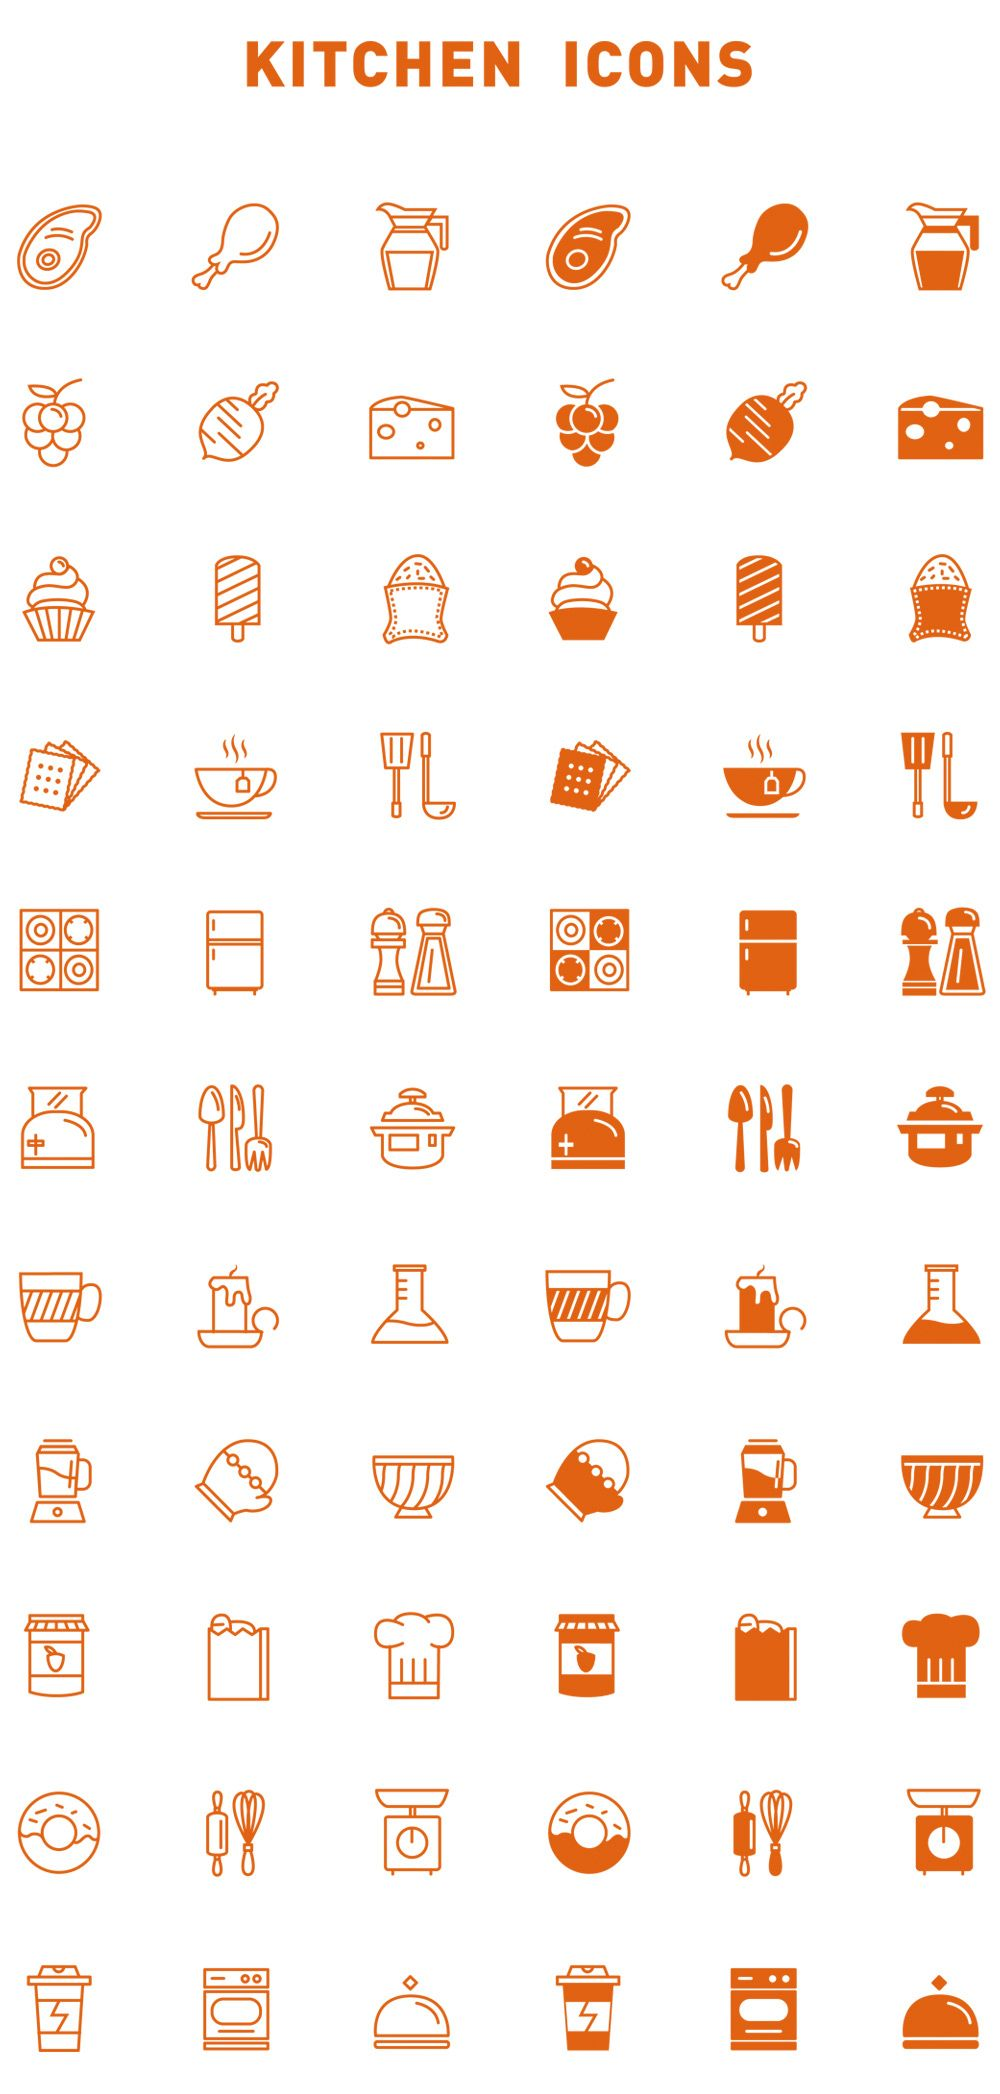 Pin by CSS Author on Free Icons Free icons, Icon